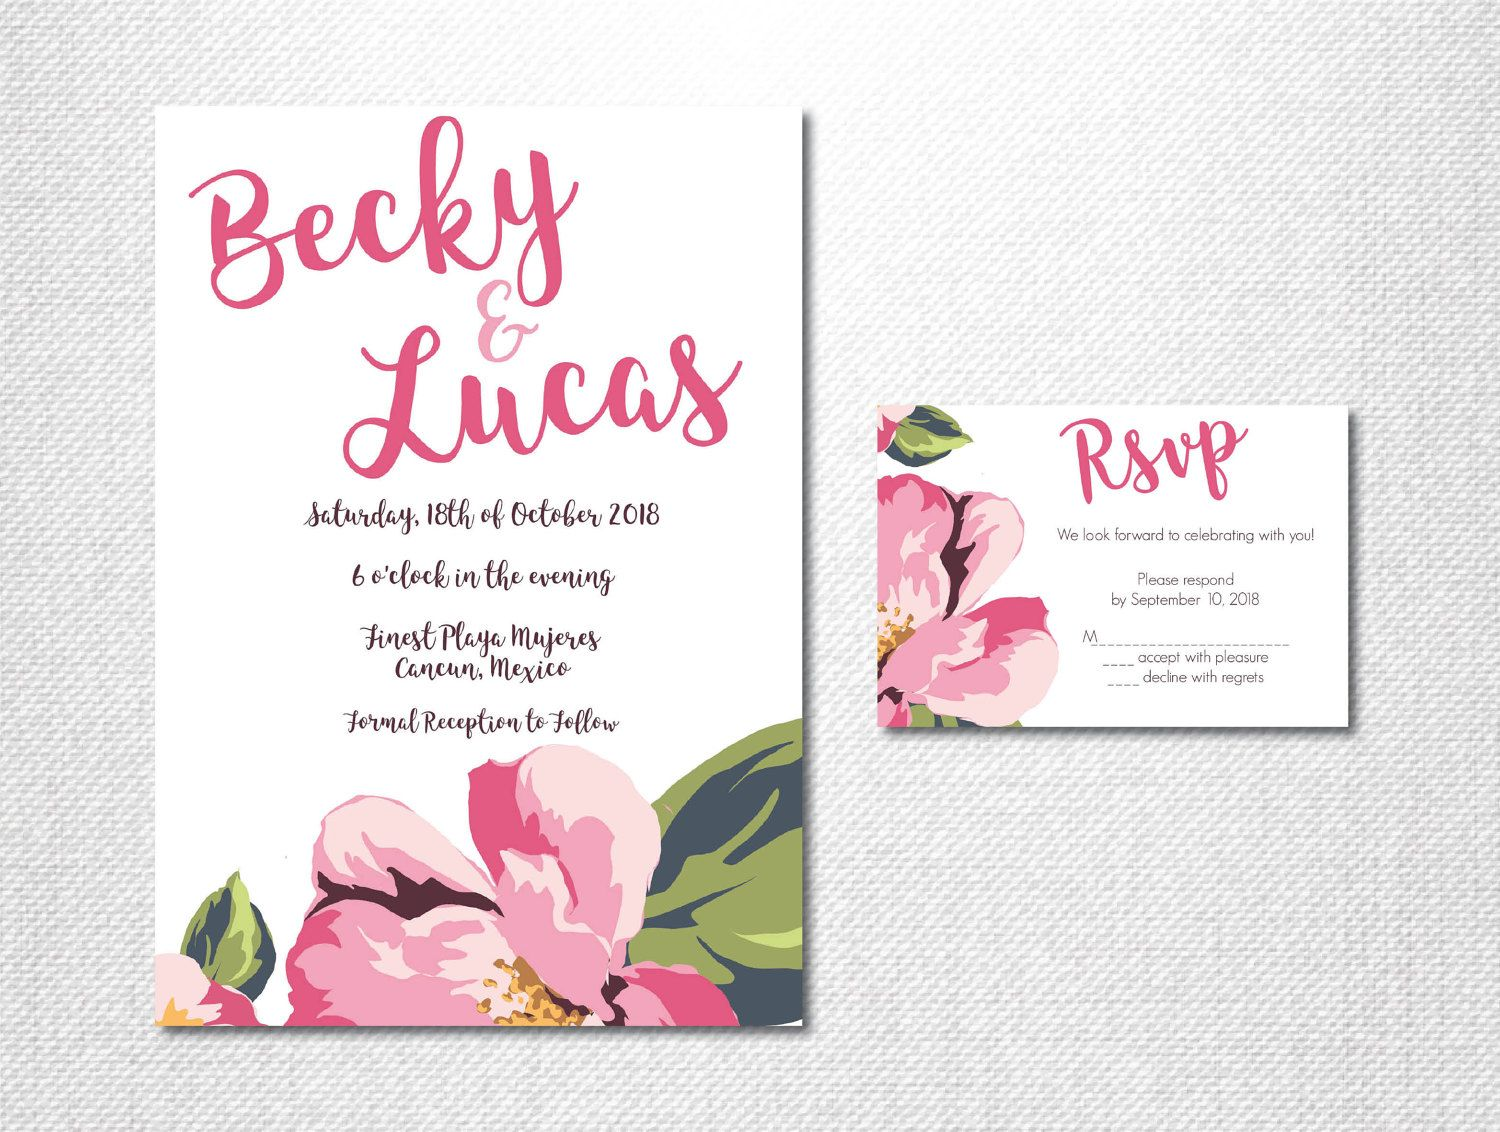 beach wedding invitation examples%0A Tropical Wedding Invitation   Destination Invite   Beach Invitation    Summer Wedding Invite   Spring Wedding